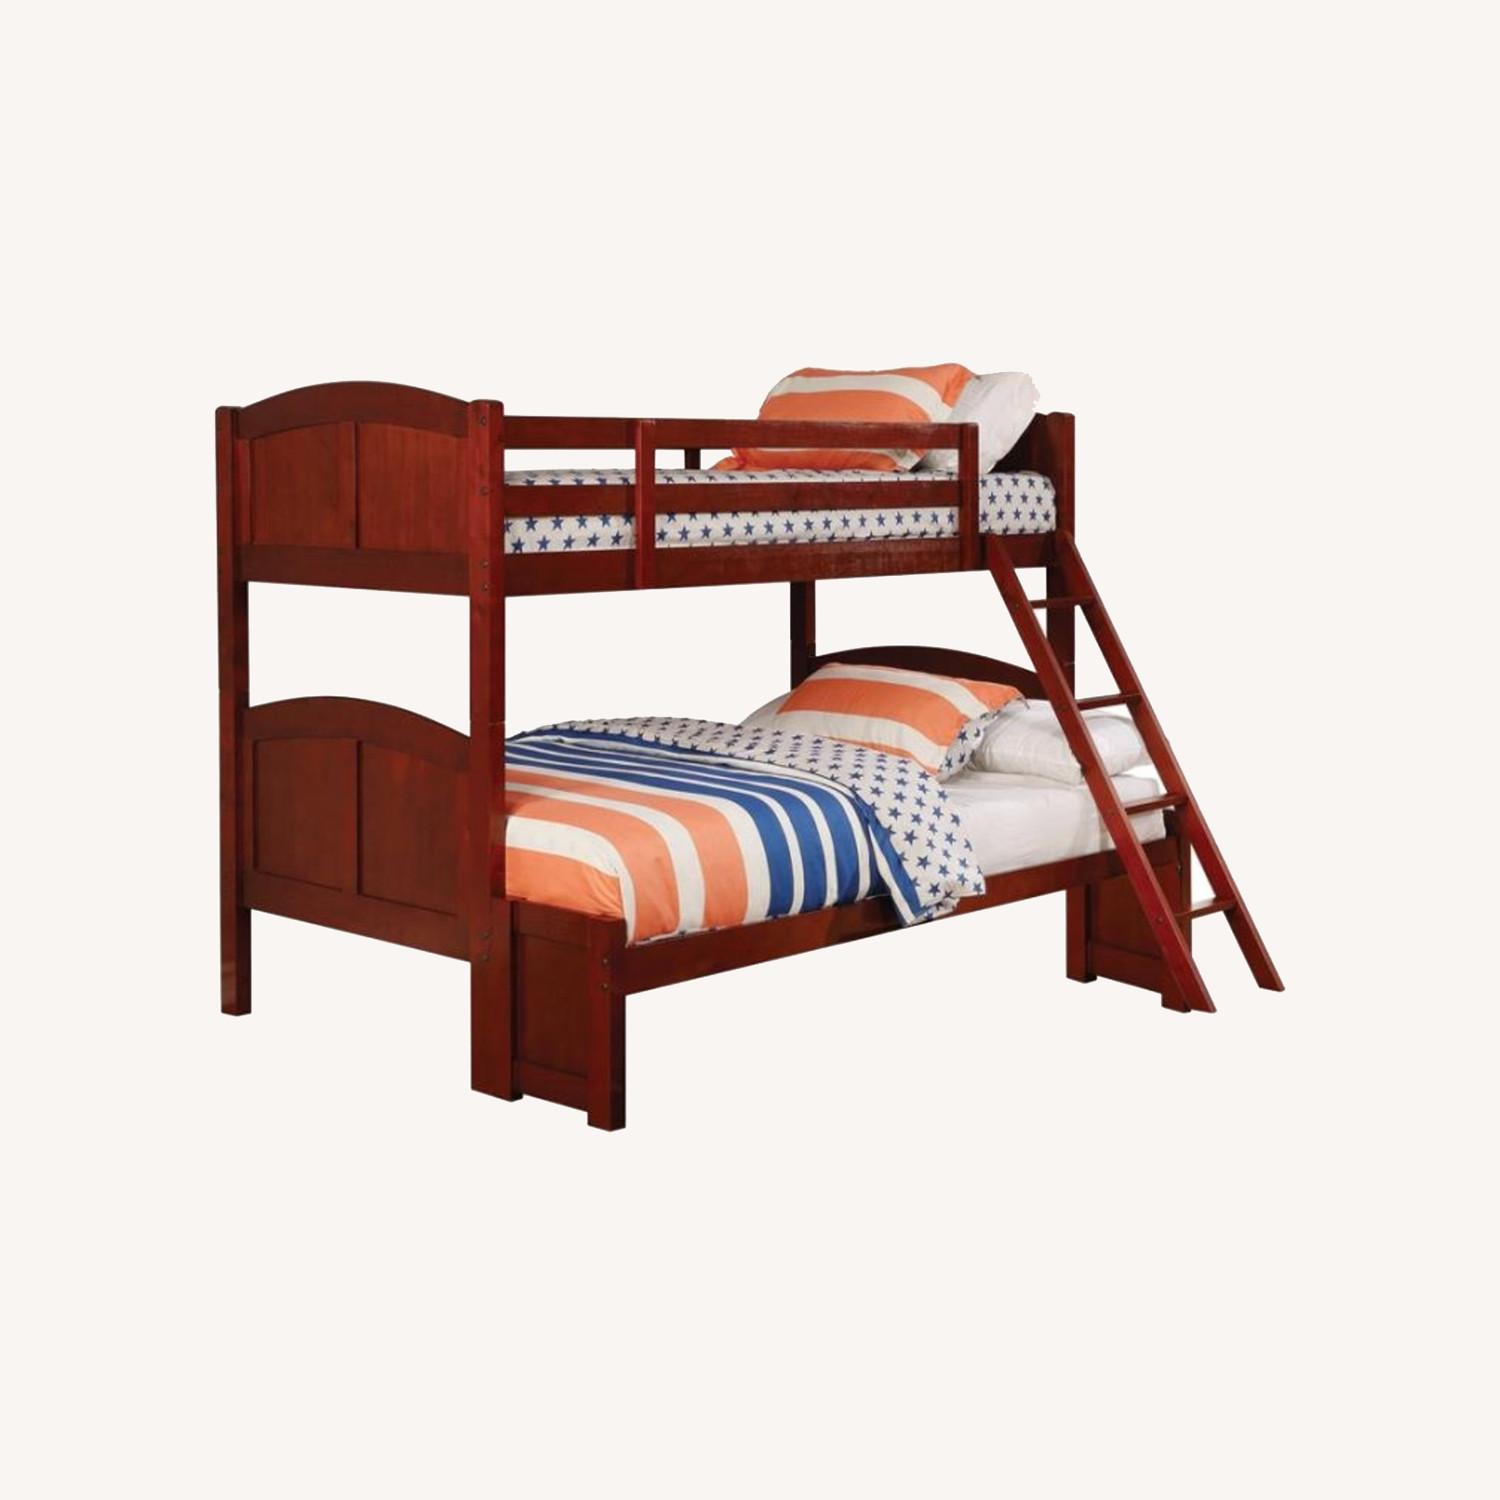 Twin Over Full Bunk Bed In Warm Chestnut Finish - image-3